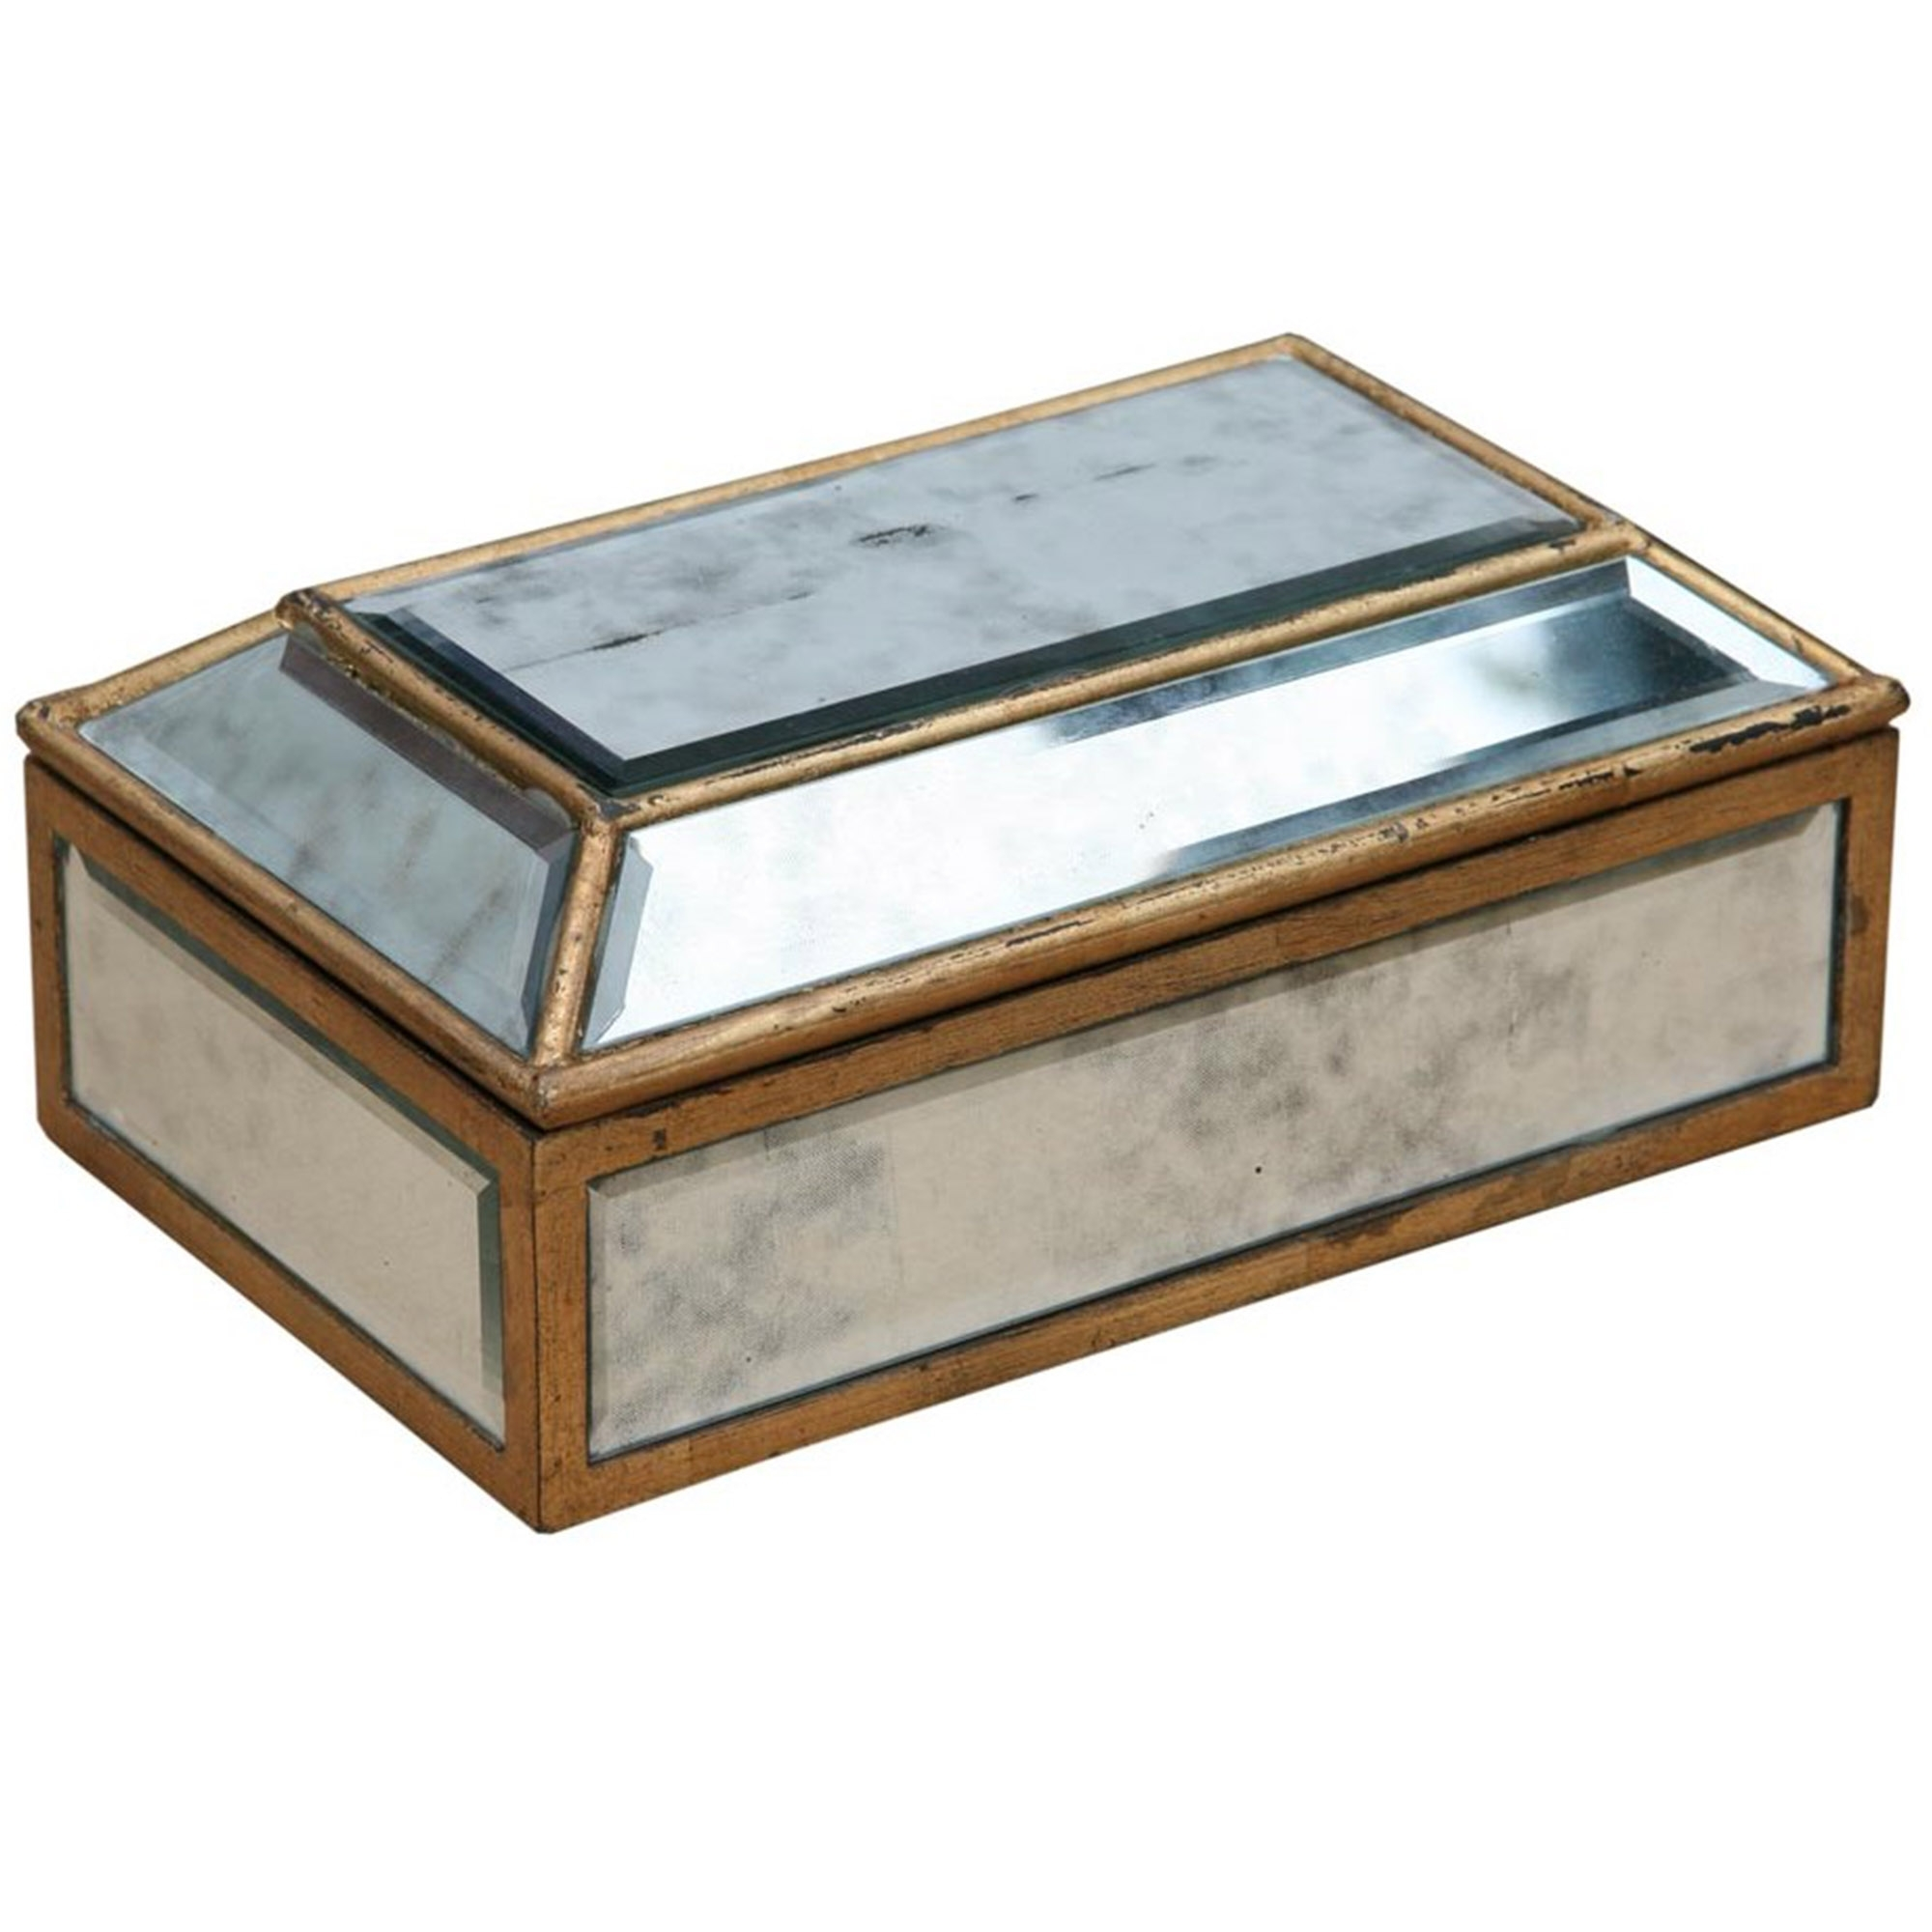 Venezia mirrored jewellery box french furniture from for Mirror jewellery box